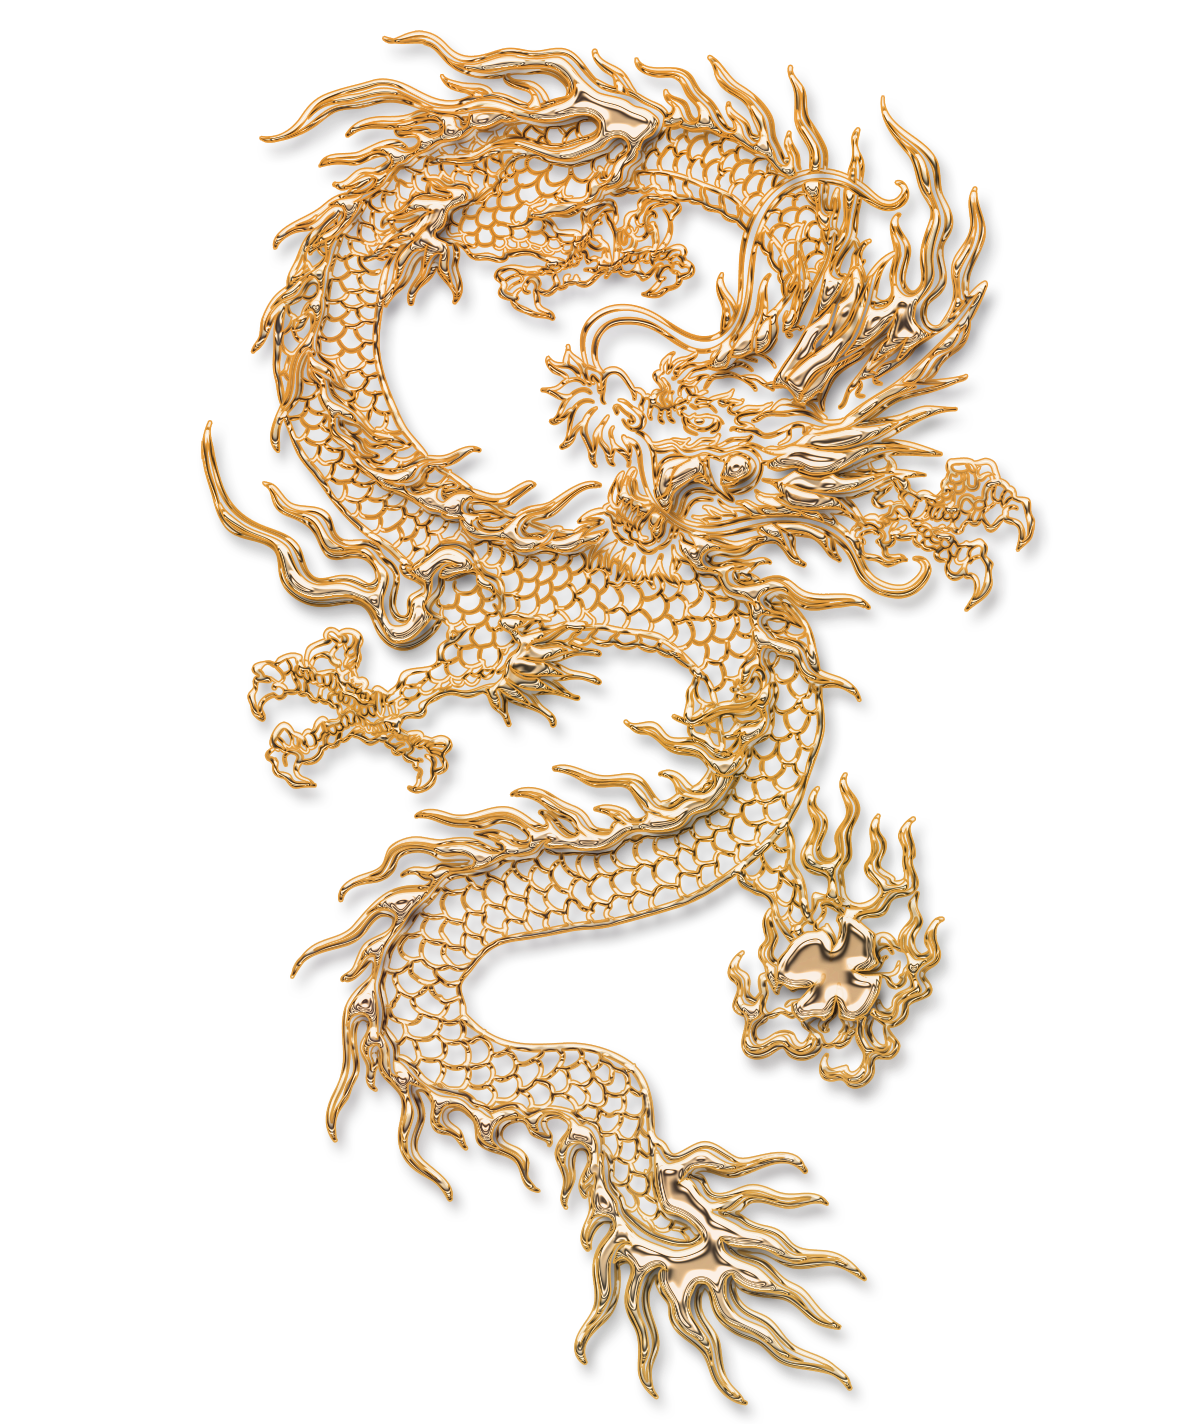 Download Tattoo Carving Illustration Chinese Dragon Free Transparent.